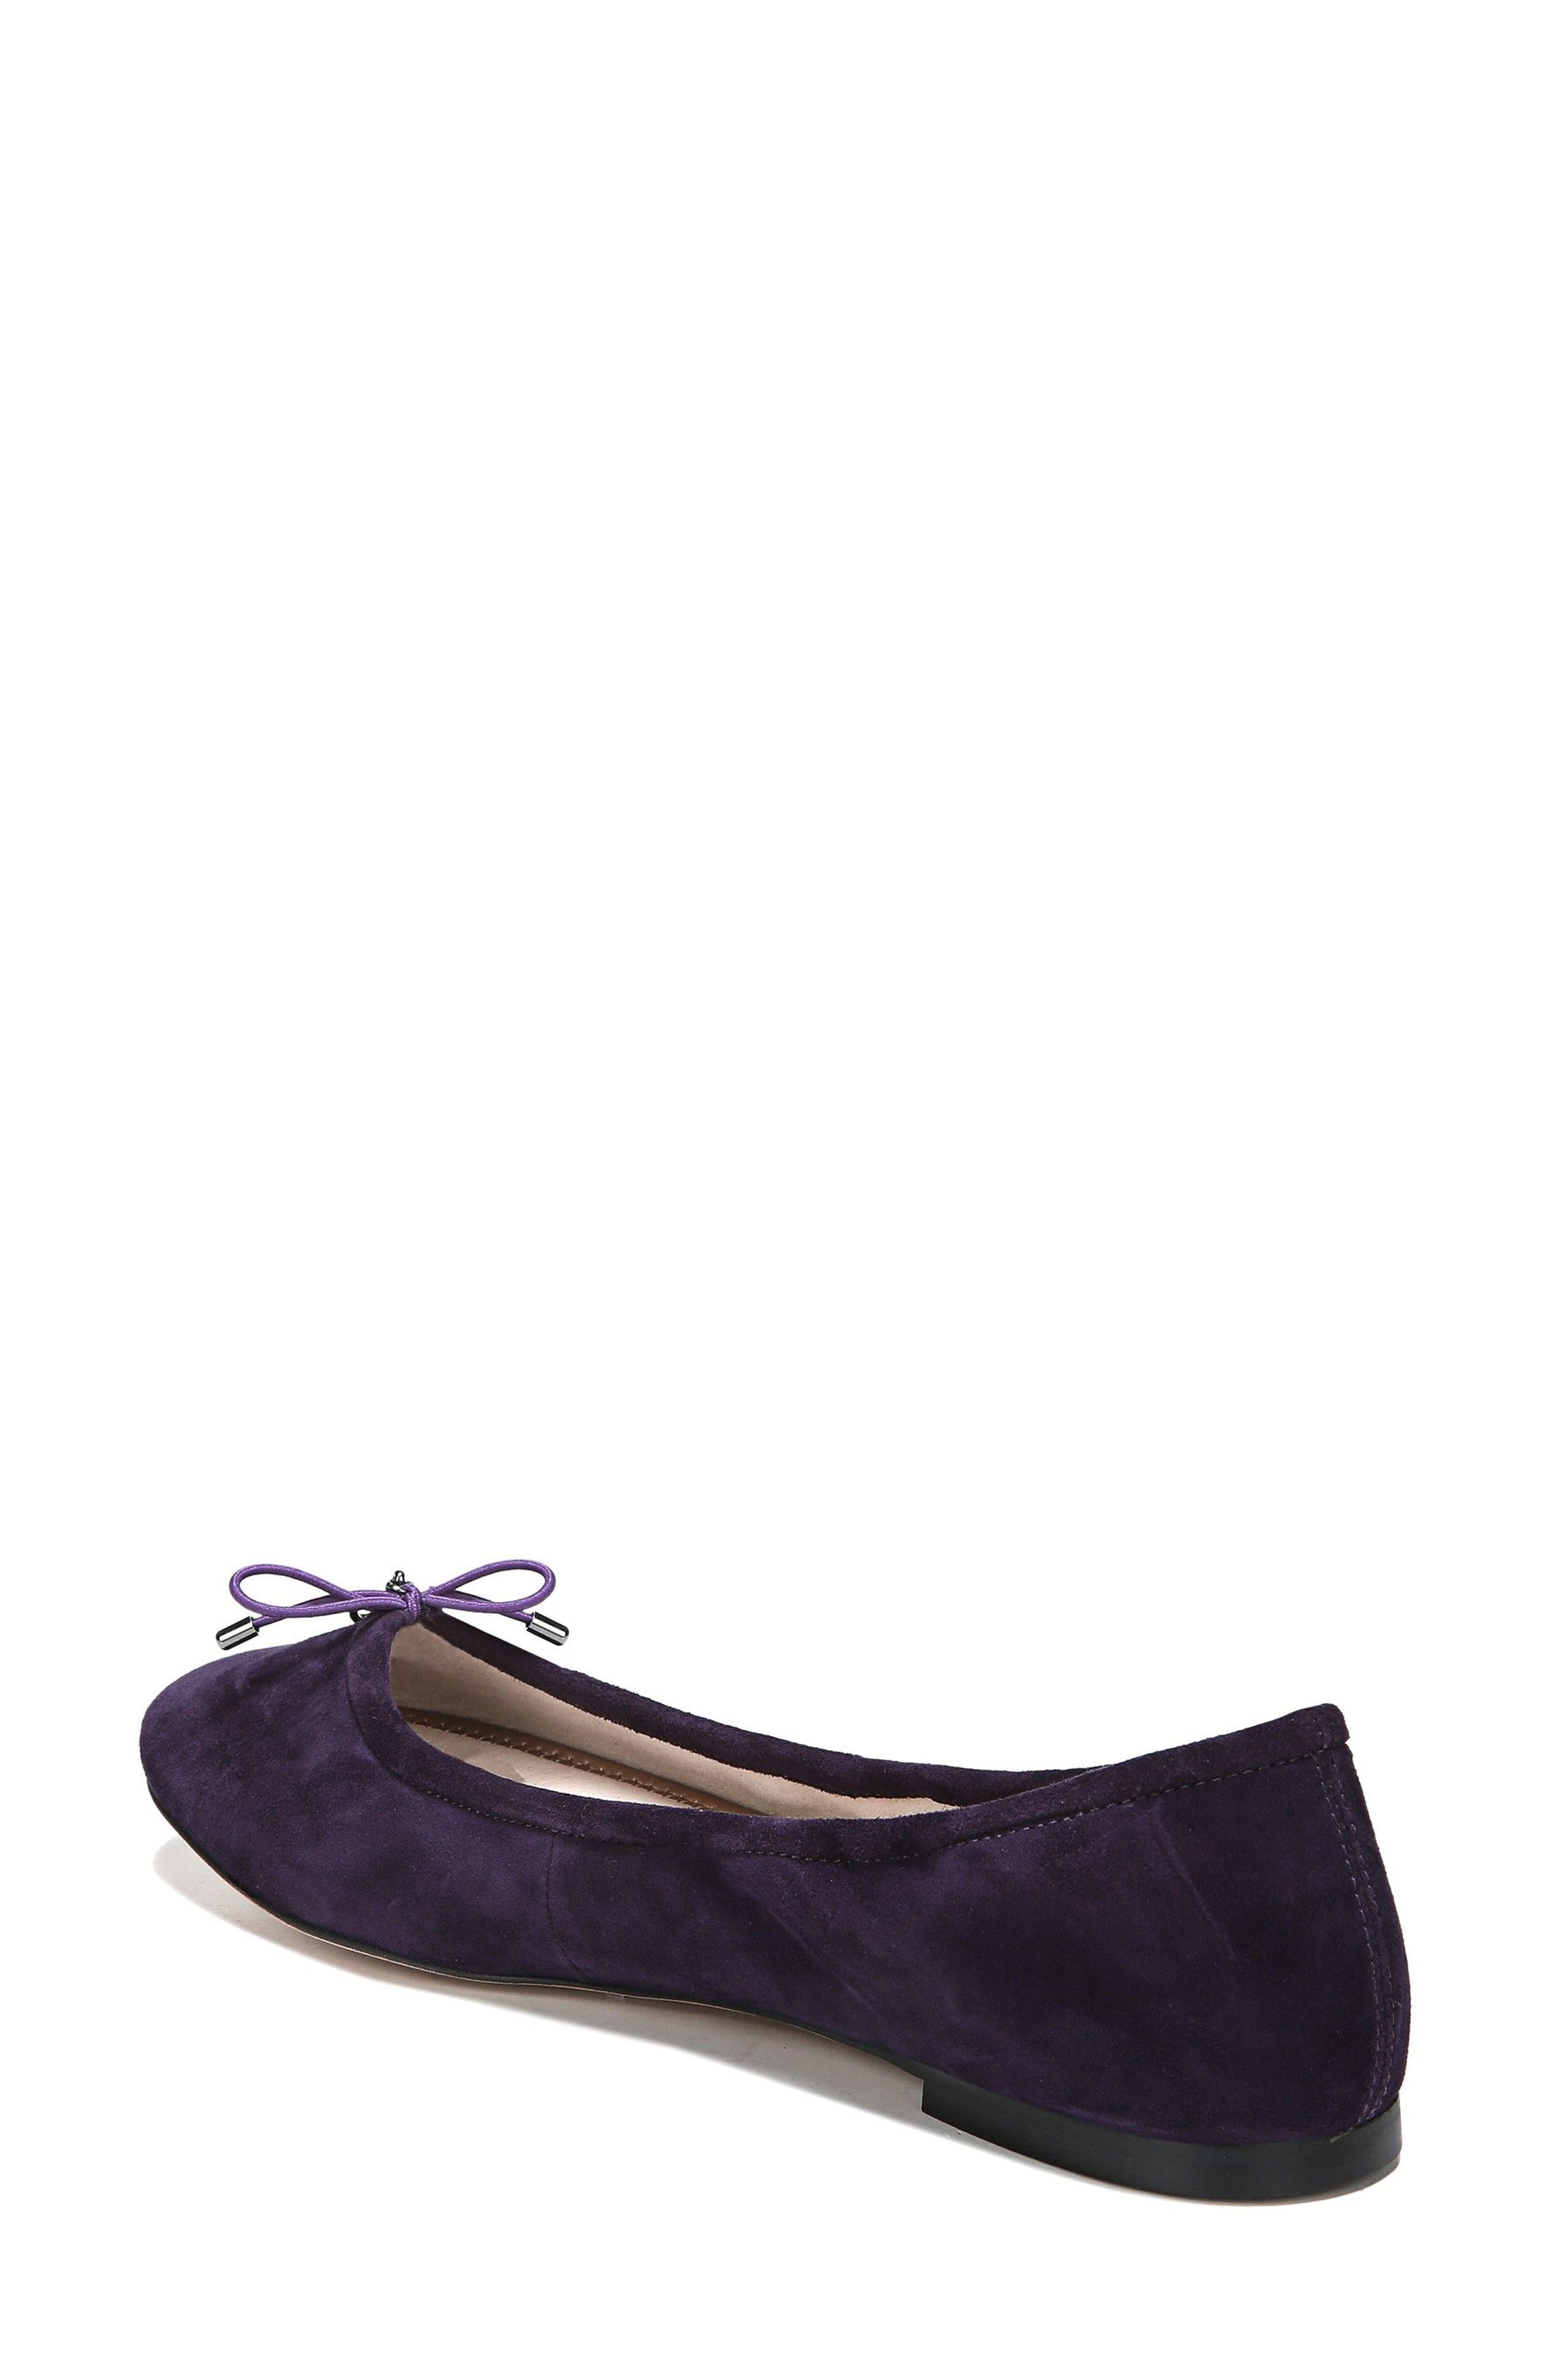 Alternate Image 2  - Sam Edelman 'Felicia' Flat